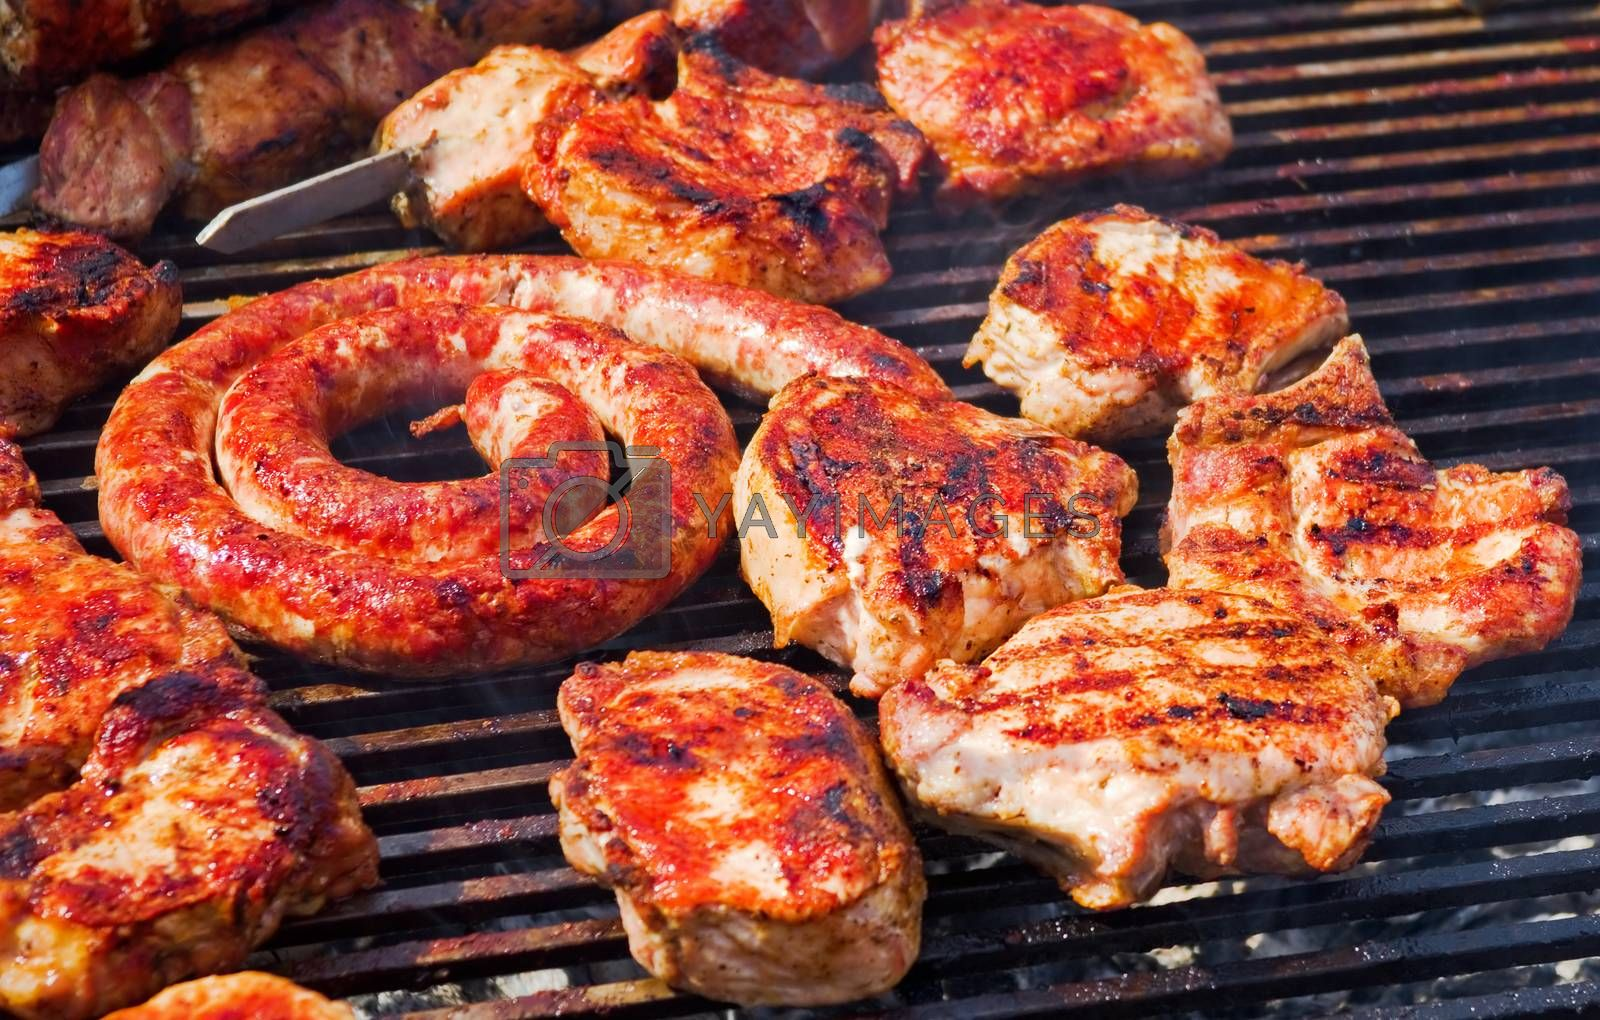 roasted meat on the grill